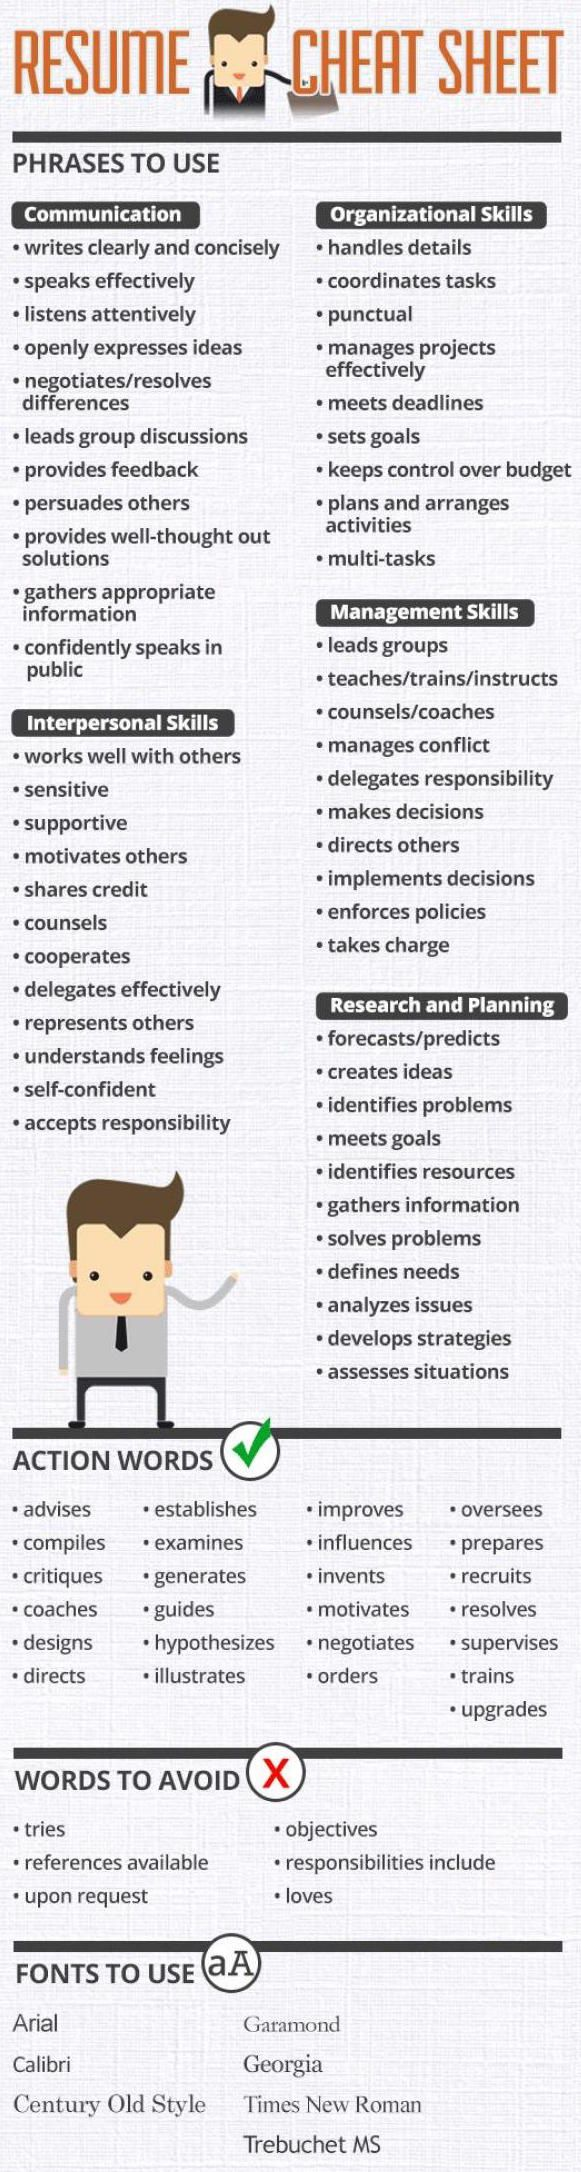 158 Best Images About Interview And Career Related On Pinterest